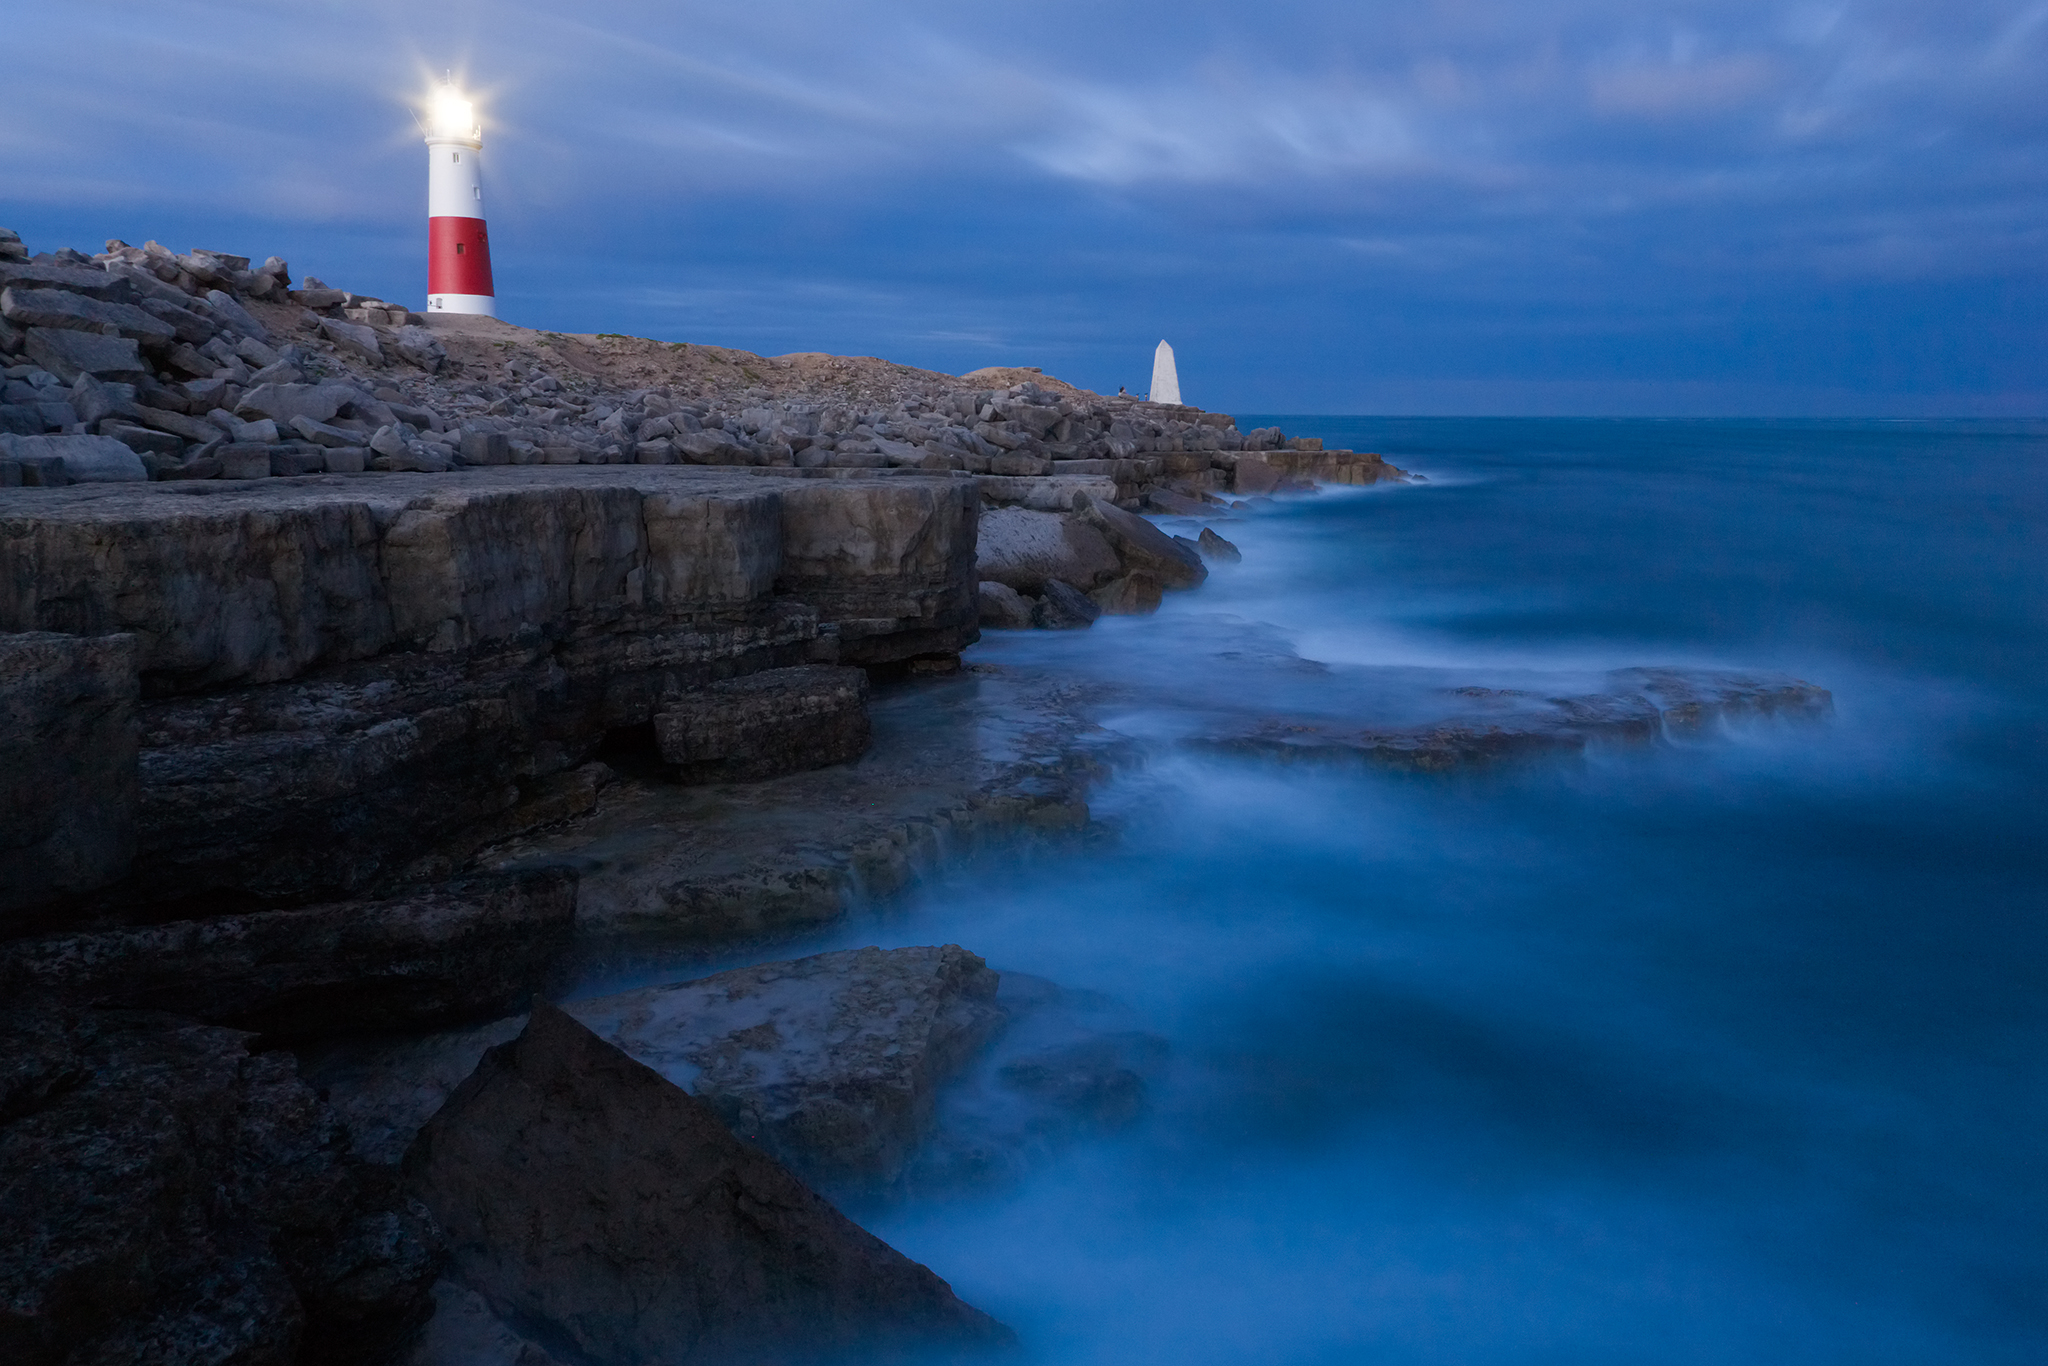 Lighthouse at Portland Bill, near Weymouth, Jurassic Coast, Dorset, England.